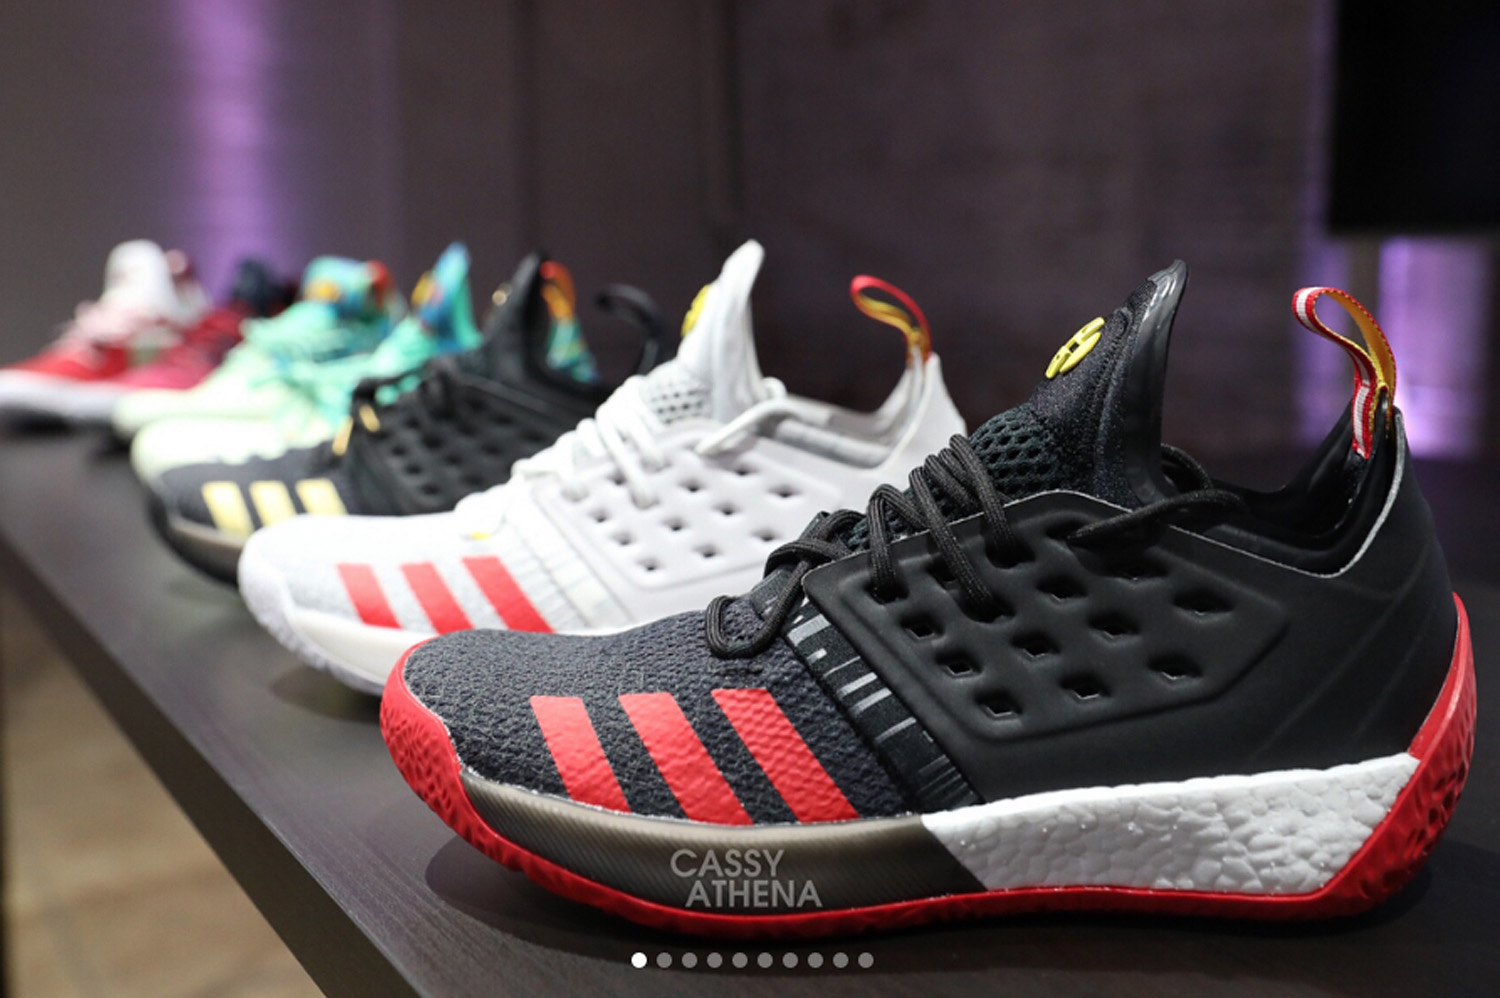 best loved d3848 1dcfe ... inexpensive share your thoughts on the adidas harden vol 2 below. is  the shoe starting